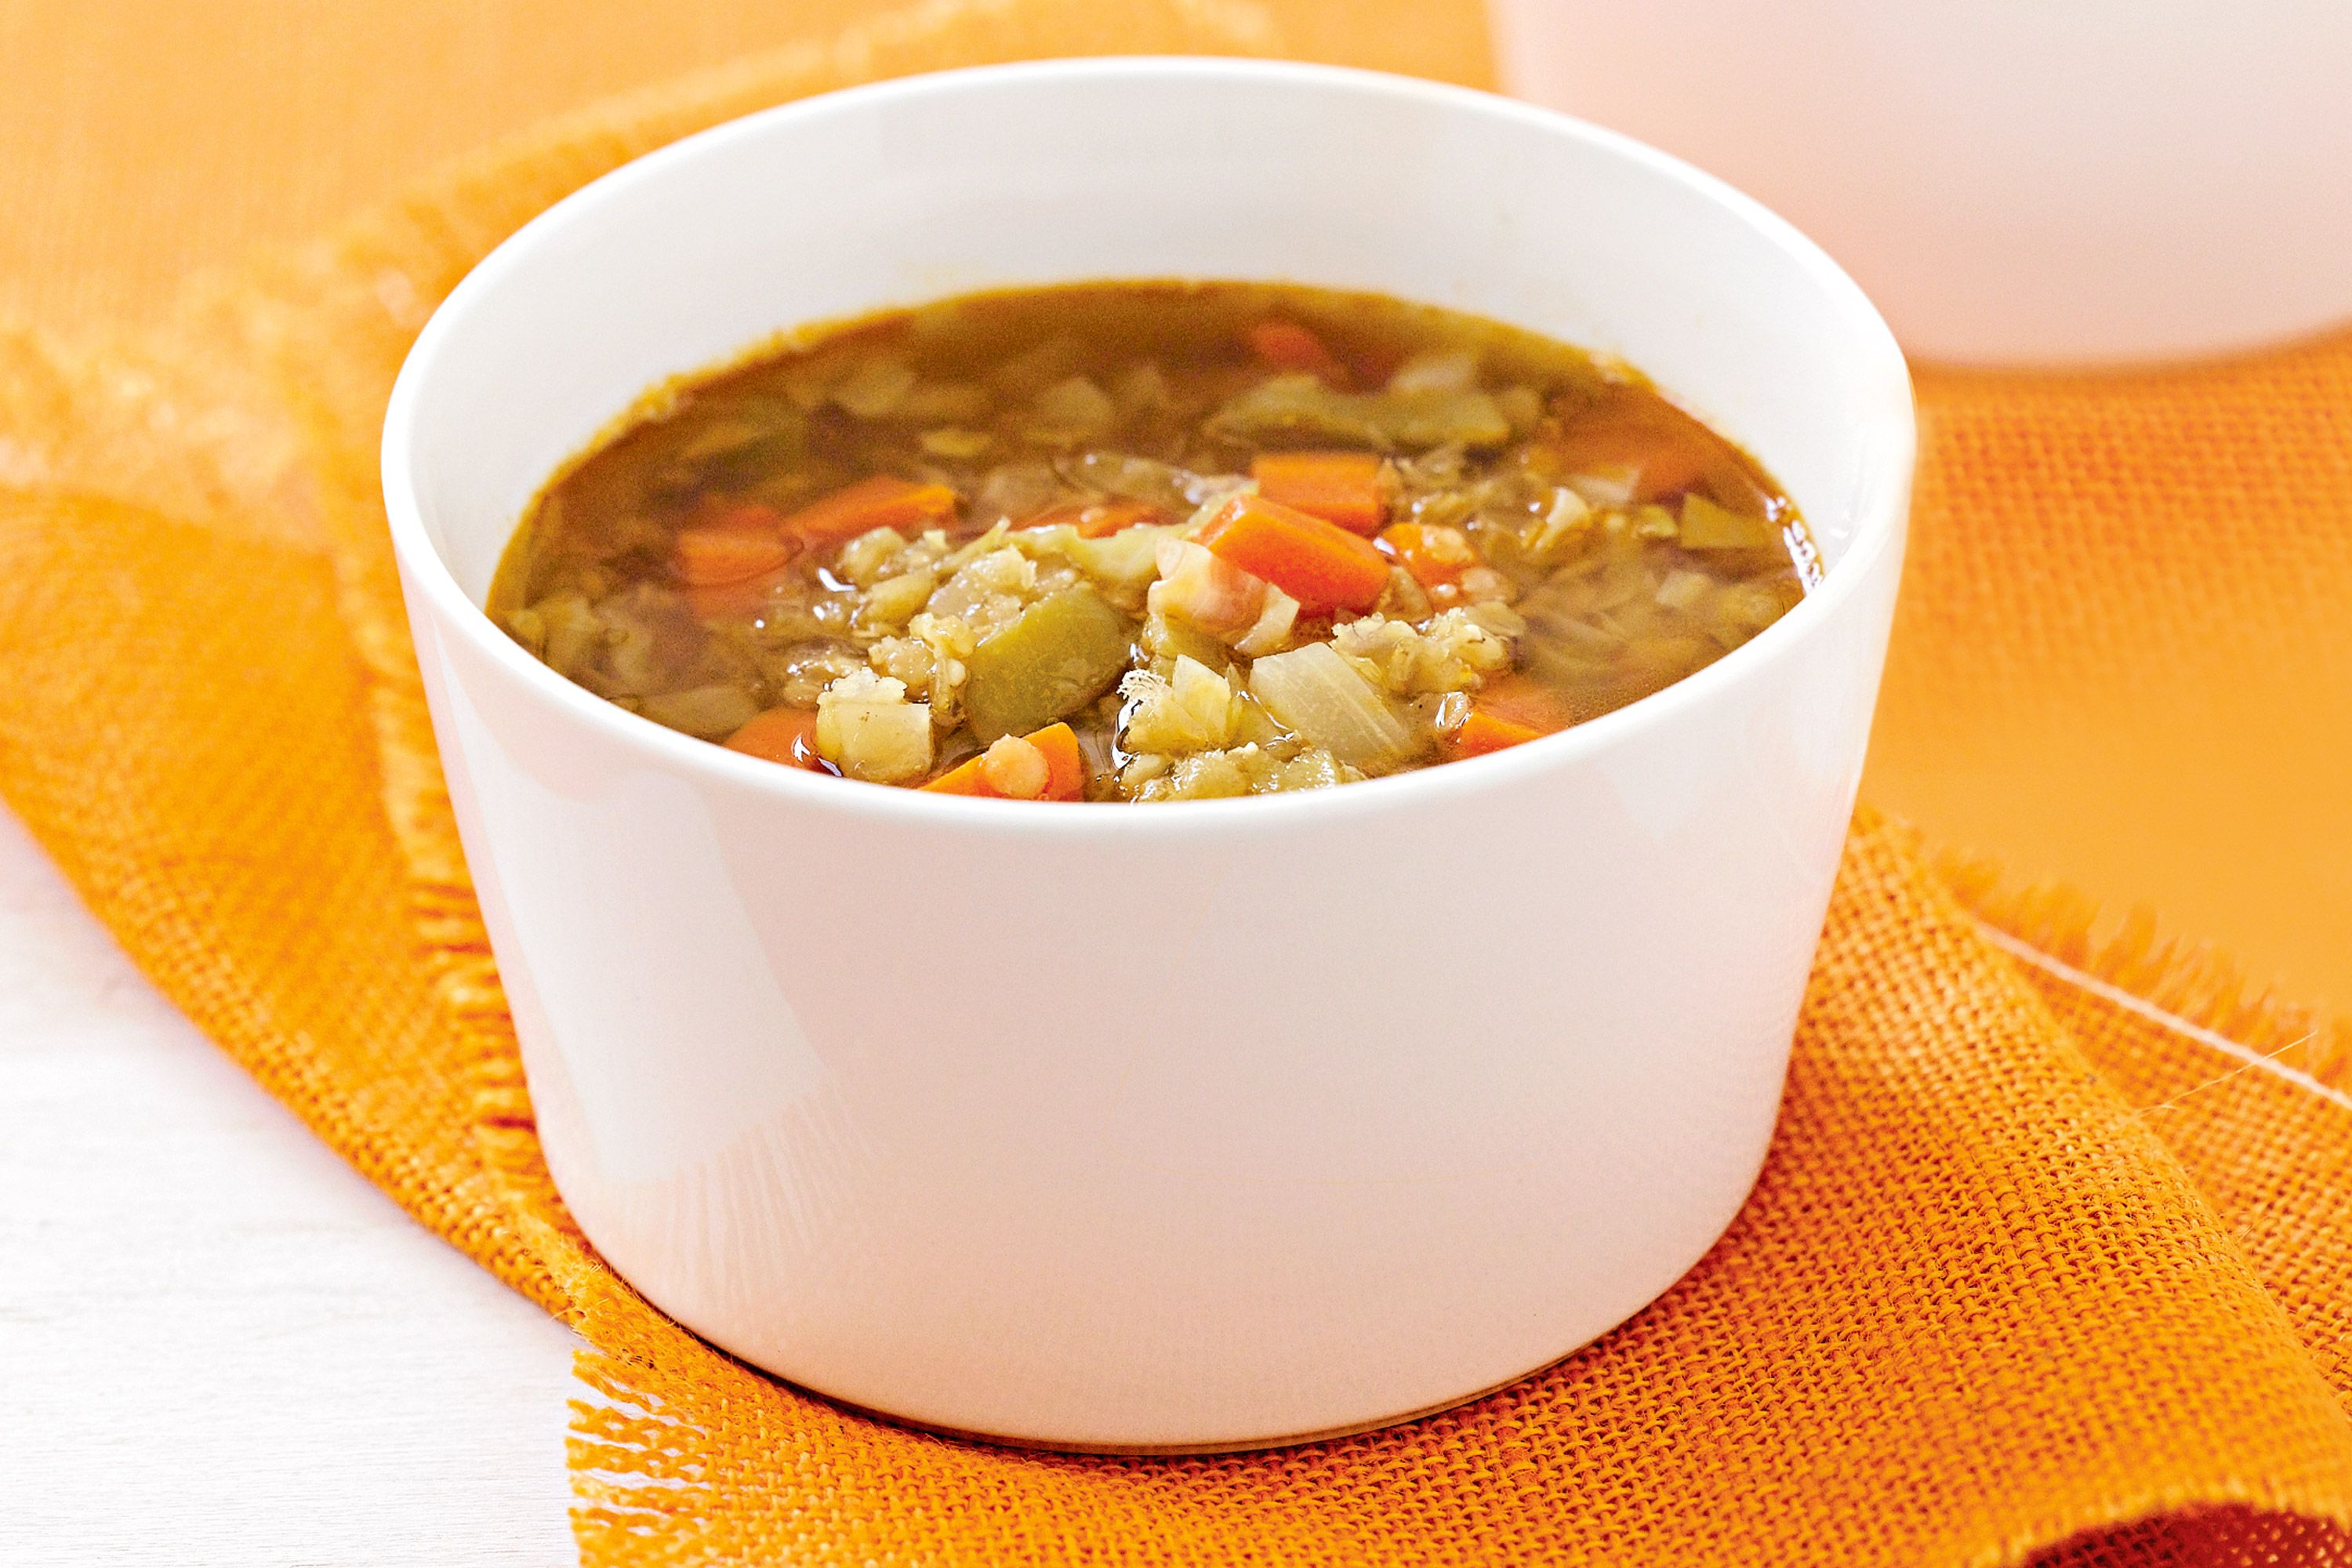 VEG LENTIL SOUP: Used 600g cut veg: broadbeans, celery, carrot, spud, zuchini and cauli. Added a few sprigs of thyme, handful of baby spinach at the end and garnished with parsley. Delish!!!